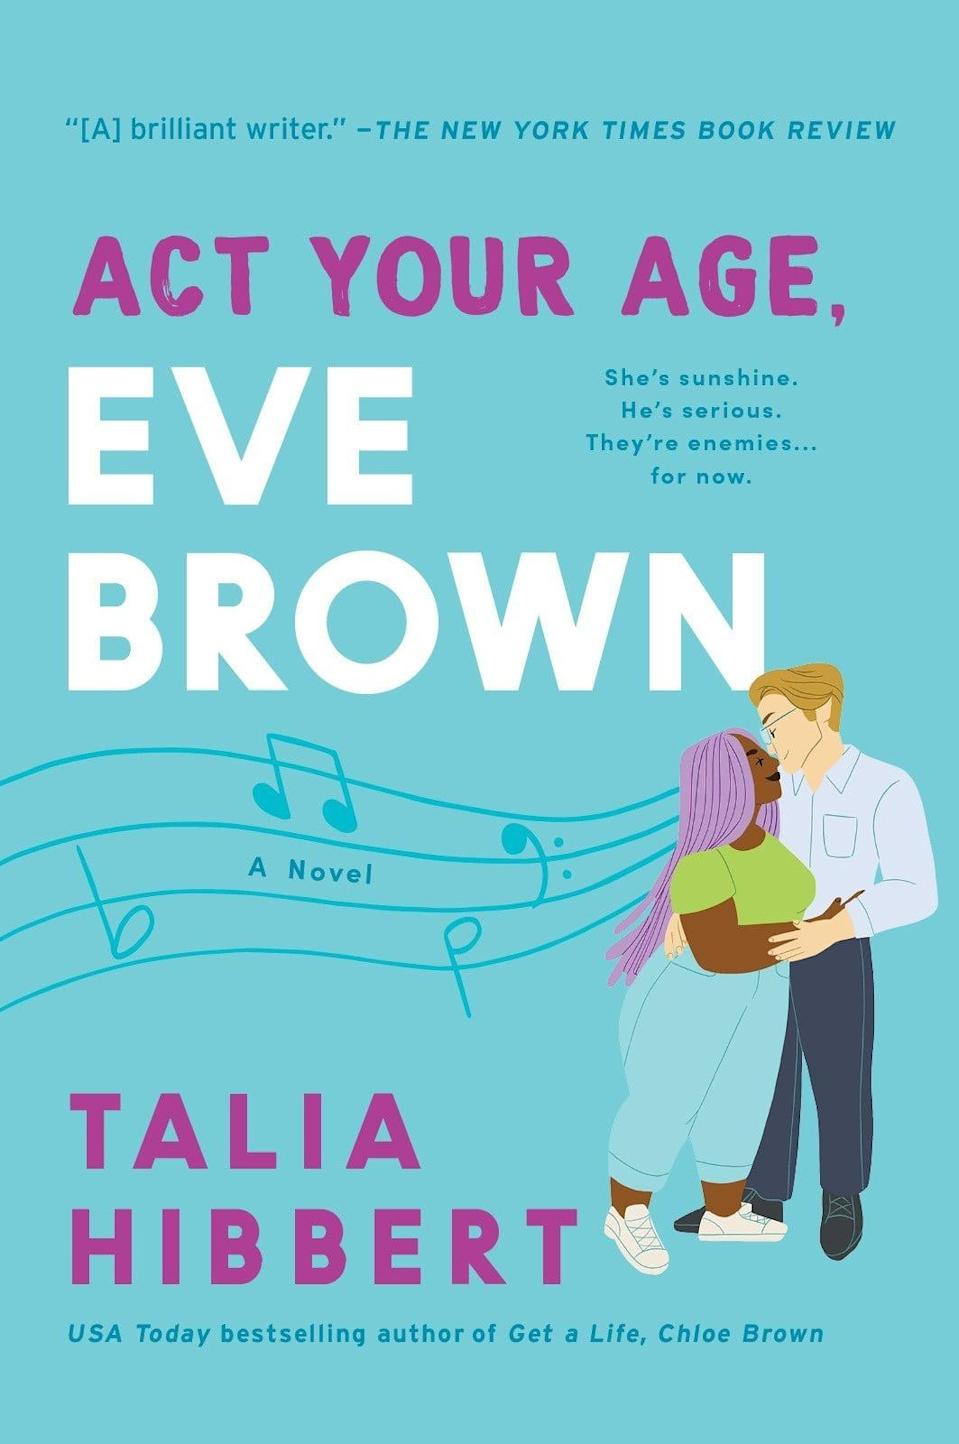 """<p><span><strong>Act Your Age, Eve Brown</strong></span>, the third novel in Talia Hibbert's Brown Sisters trilogy, puts the spotlight on the chaotic Eve. After an incident at a <a class=""""link rapid-noclick-resp"""" href=""""https://www.popsugar.co.uk/Wedding"""" rel=""""nofollow noopener"""" target=""""_blank"""" data-ylk=""""slk:wedding"""">wedding</a>, Eve's parents are determined their daughter is going to get her life together, but things don't go exactly as planned. On her first job interview, Eve accidentally hits her would-be boss with her car, sparking an unlikely relationship that's bound to lead to some exciting new developments in her life. </p> <p><em>Out March 9</em></p>"""